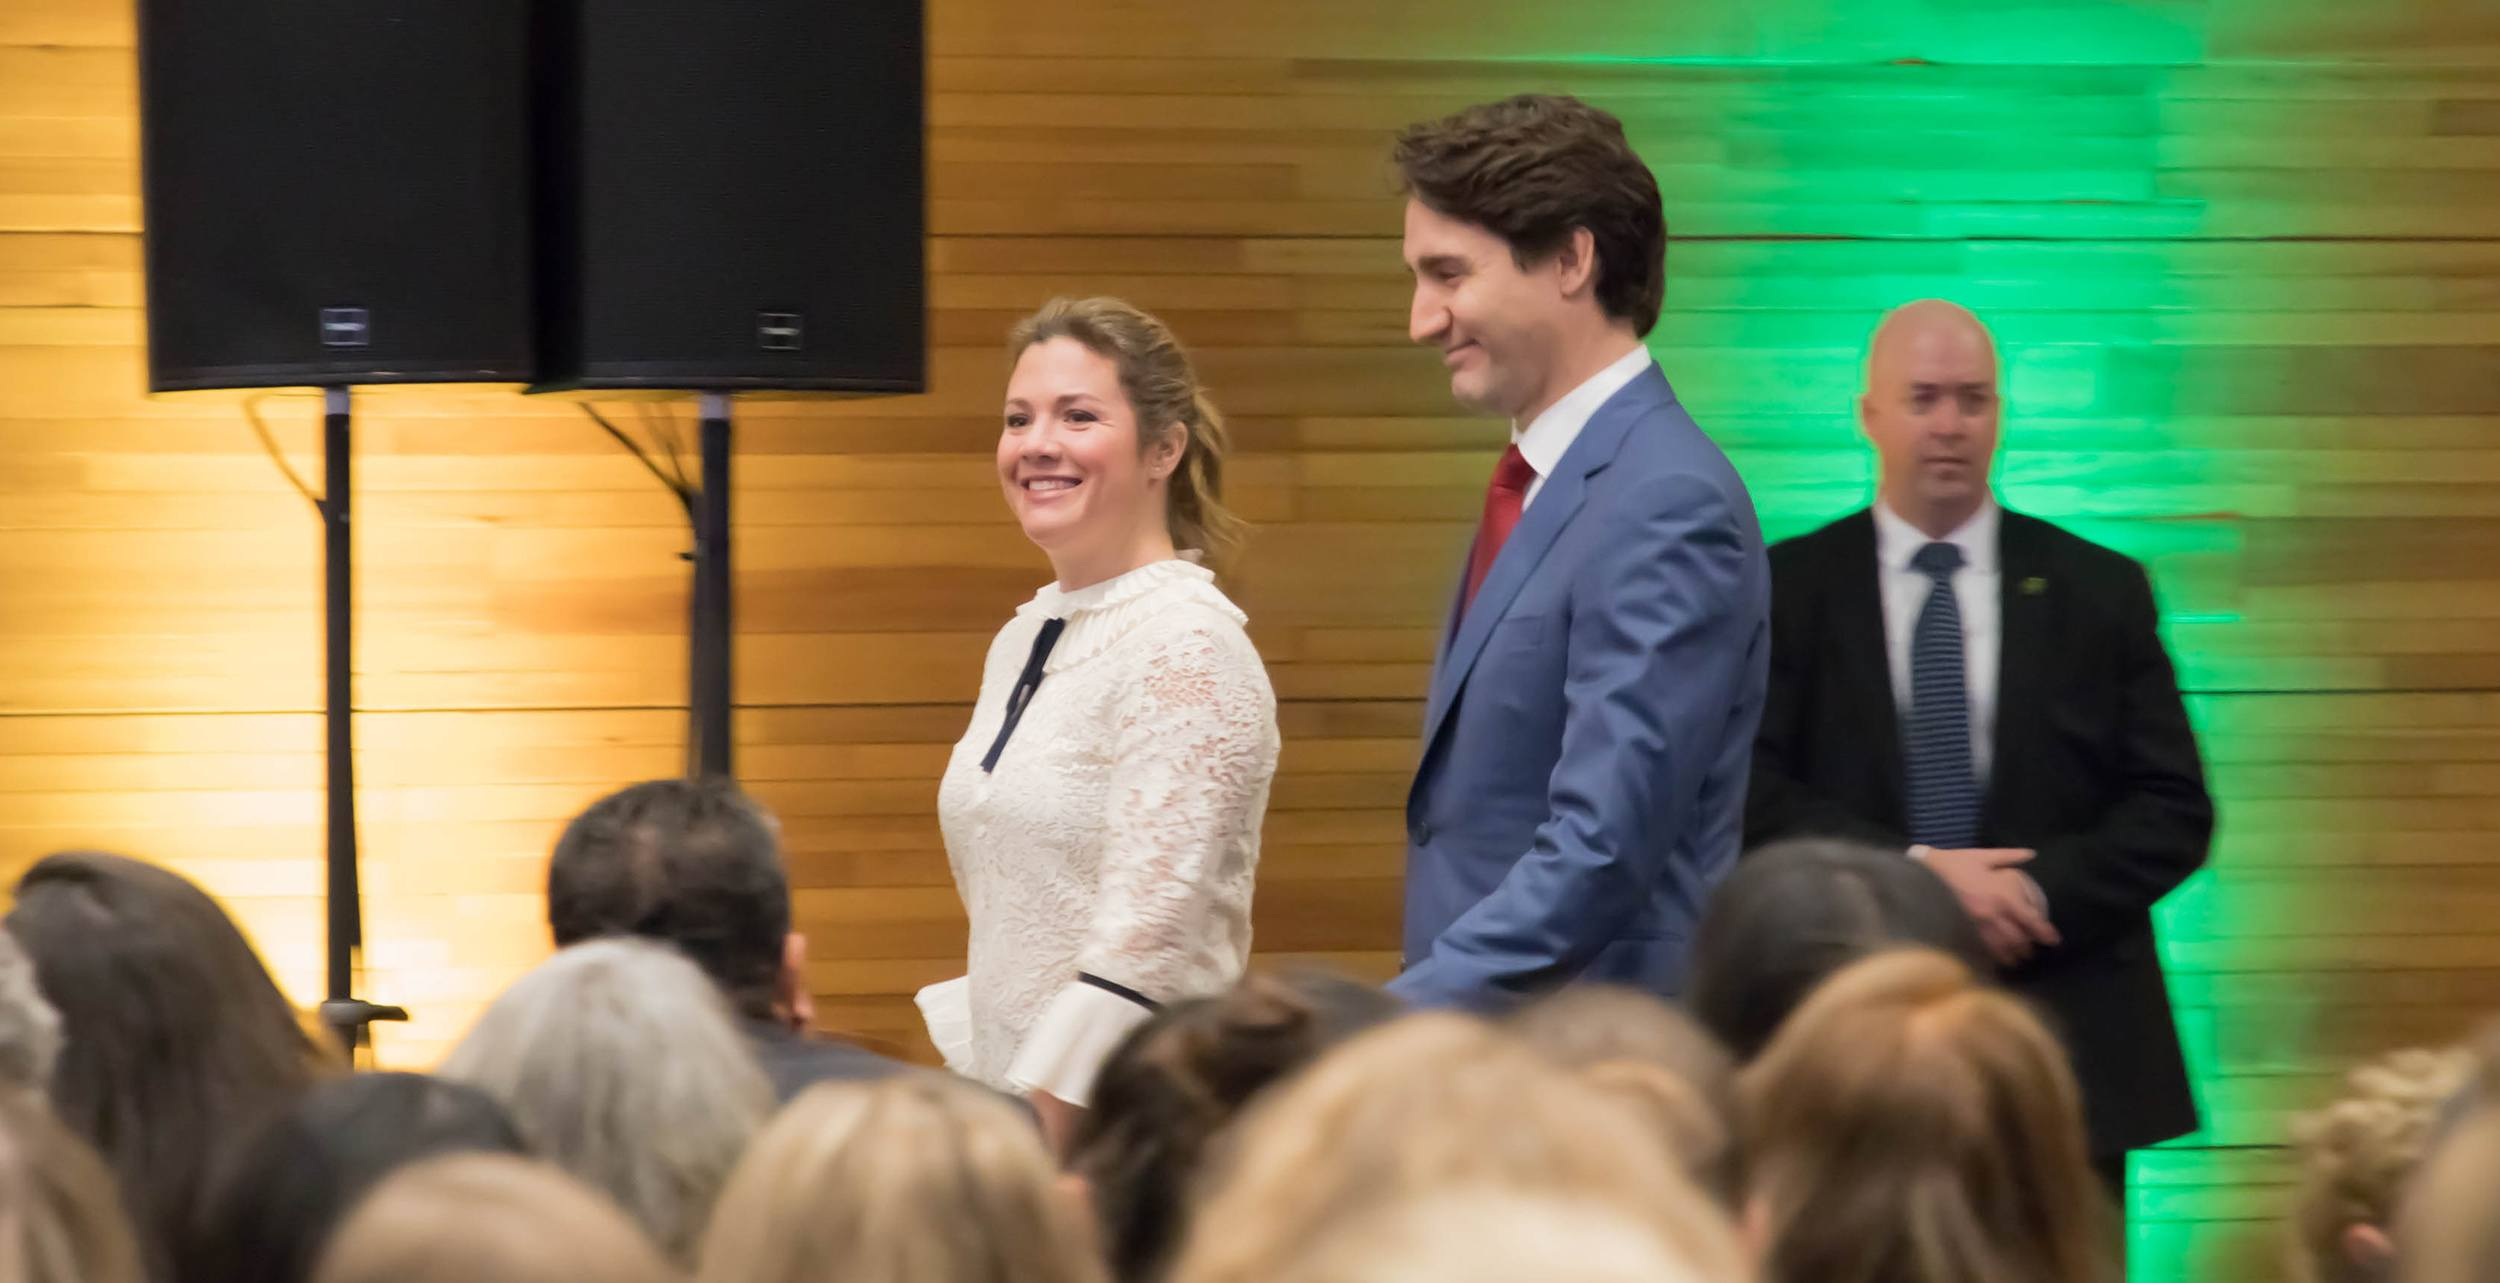 Sophie gregoire trudeau and husband justin jenni sheppard daily hive